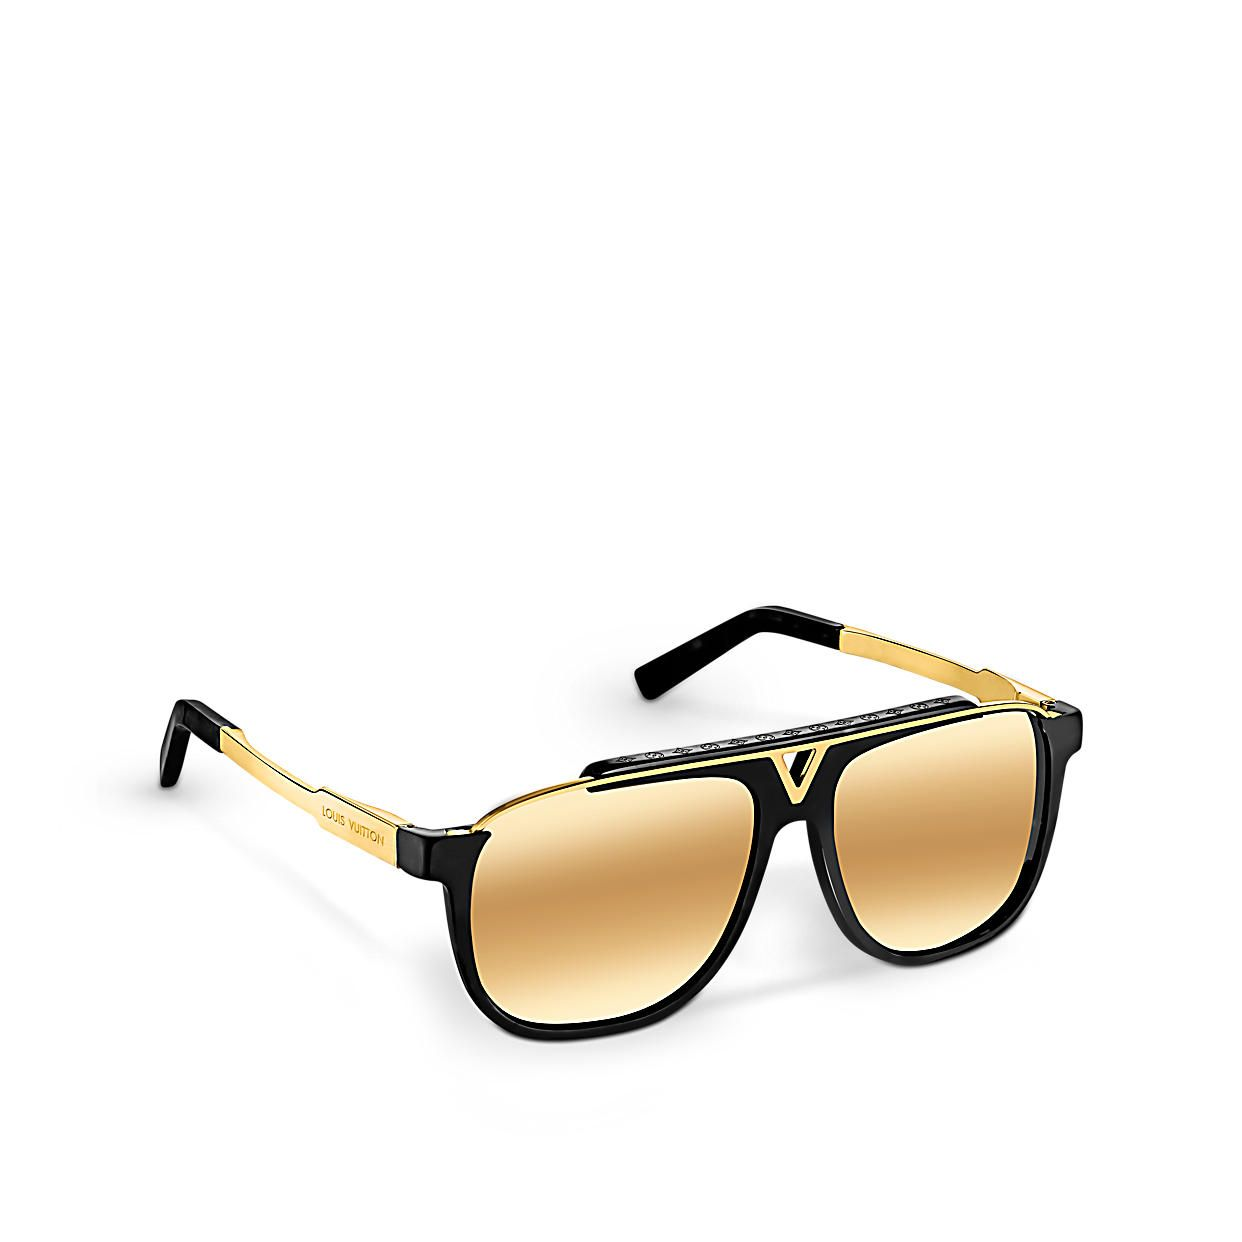 1064e54963d3 Mascot in Men s Accessories Sunglasses collections by Louis Vuitton ...